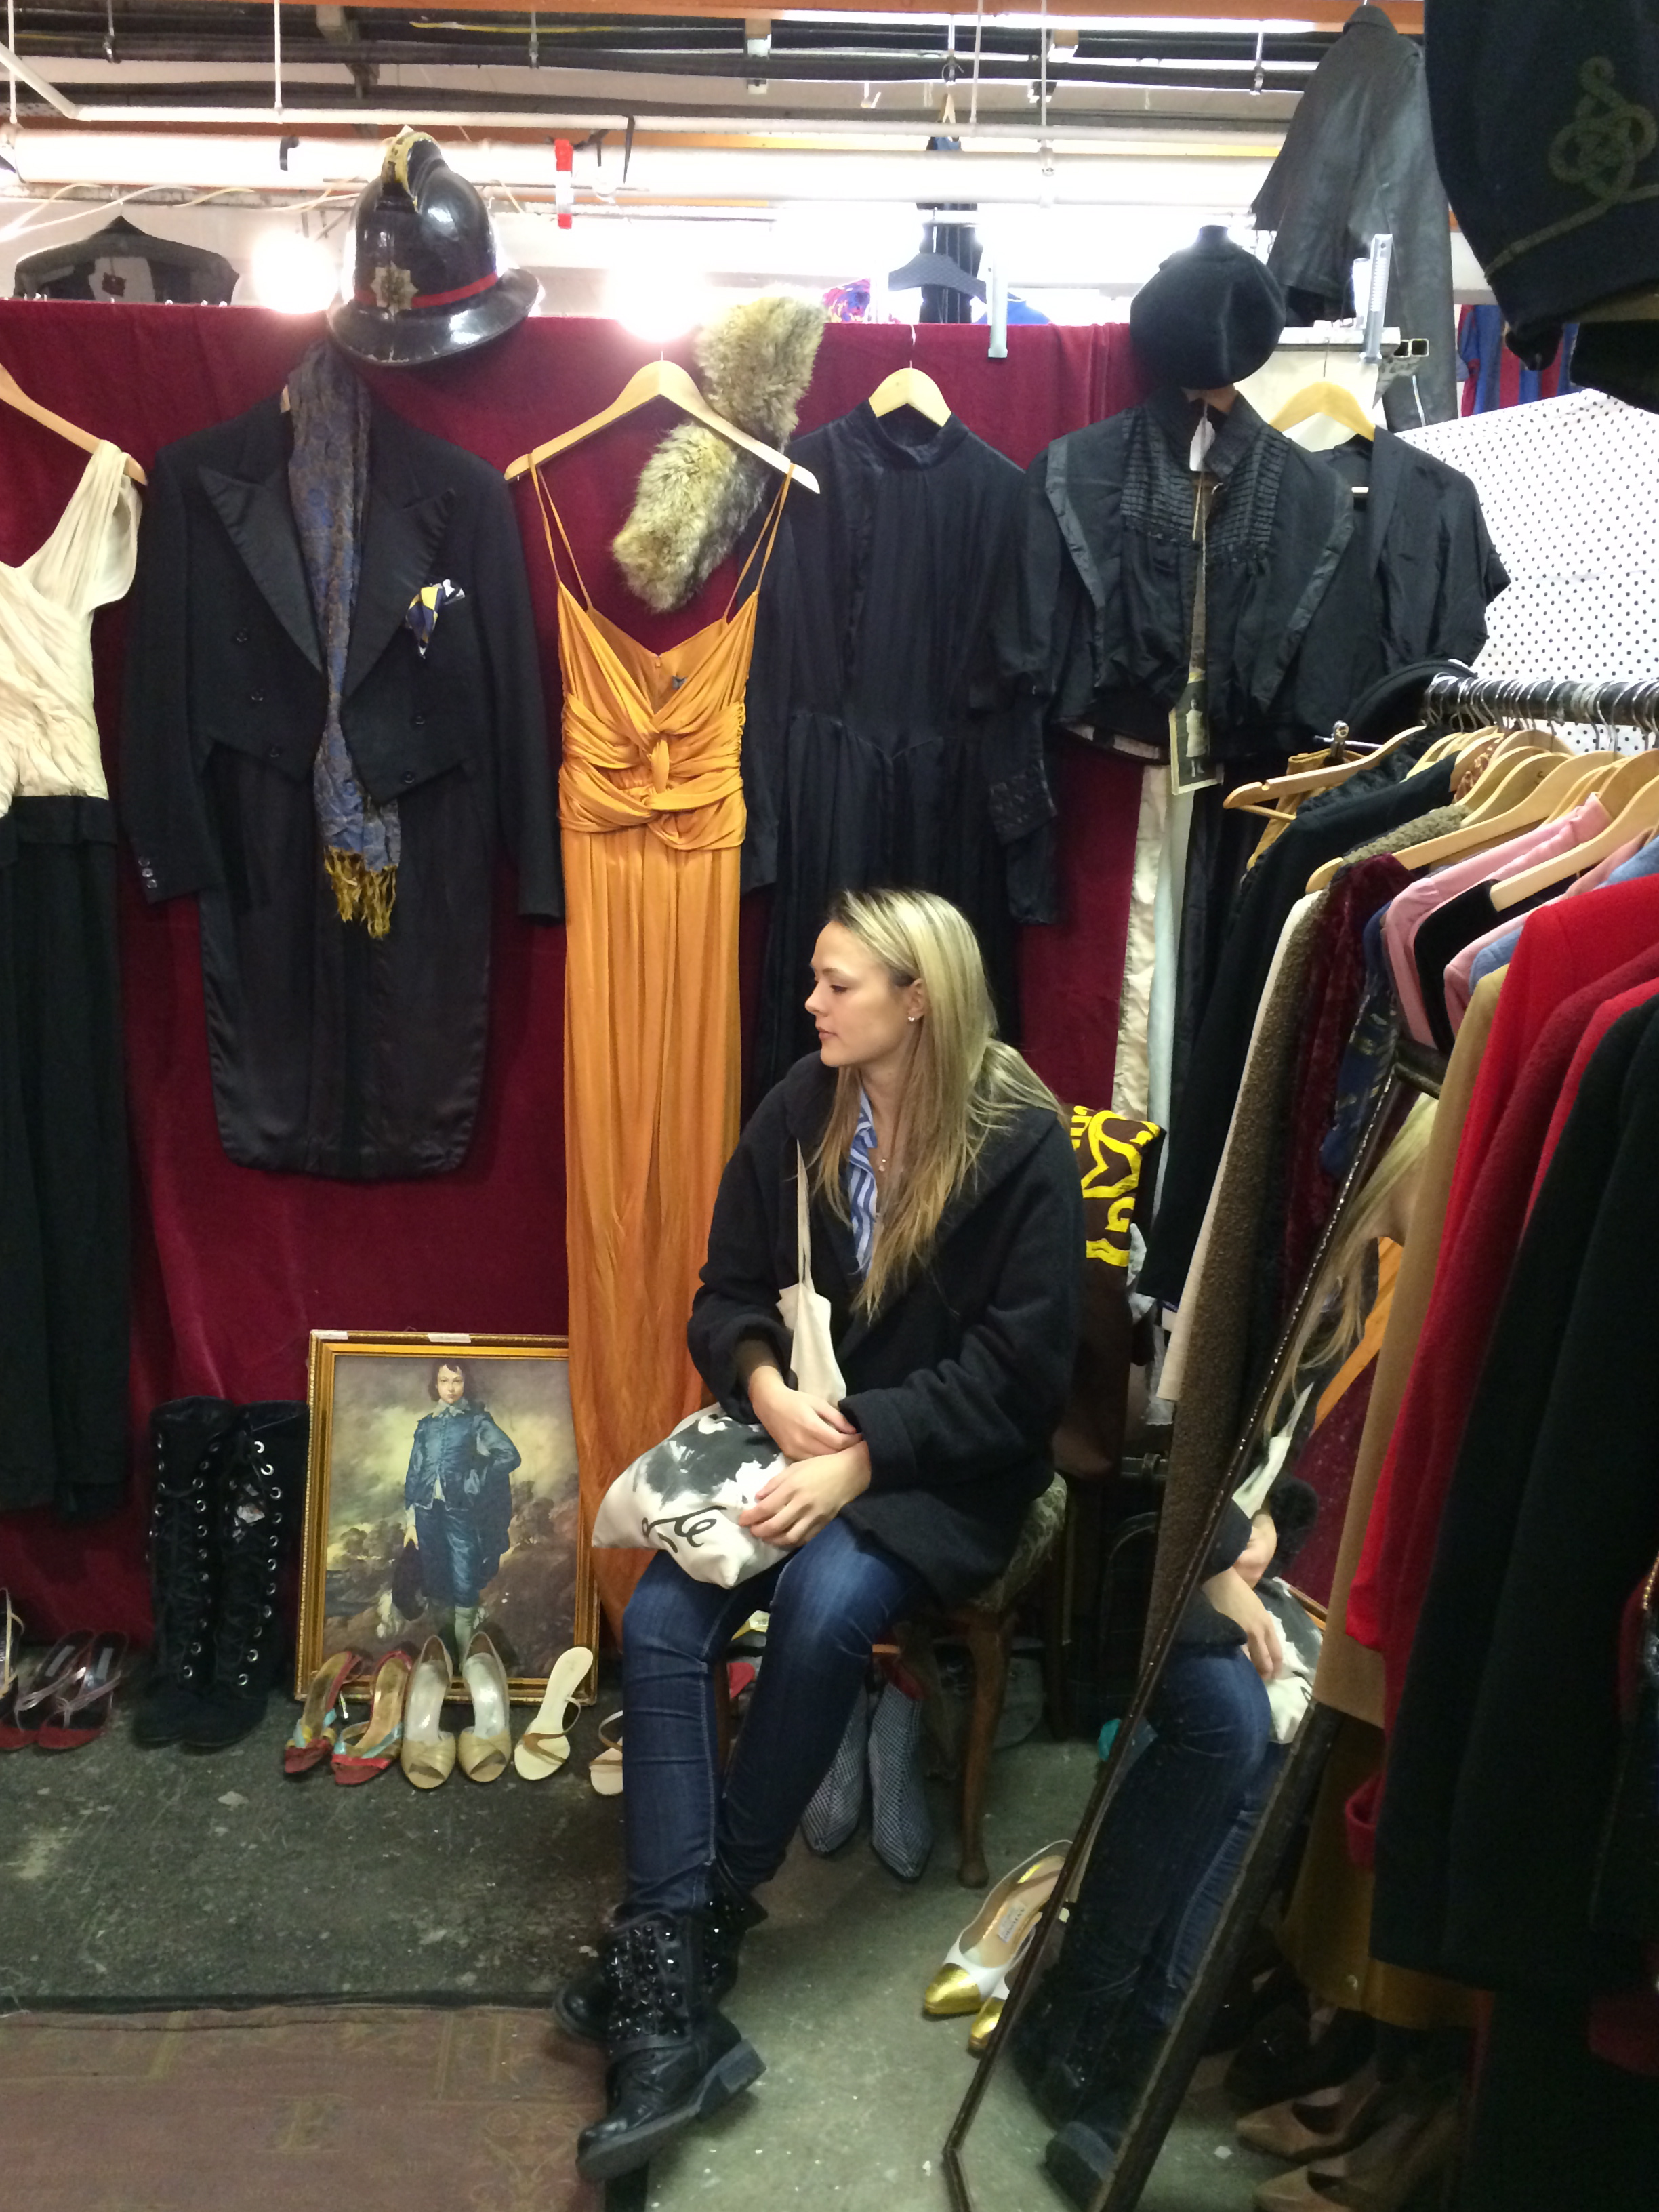 Get the London Look - Vintage Shopping on Brick Lane - My Girls On Tour